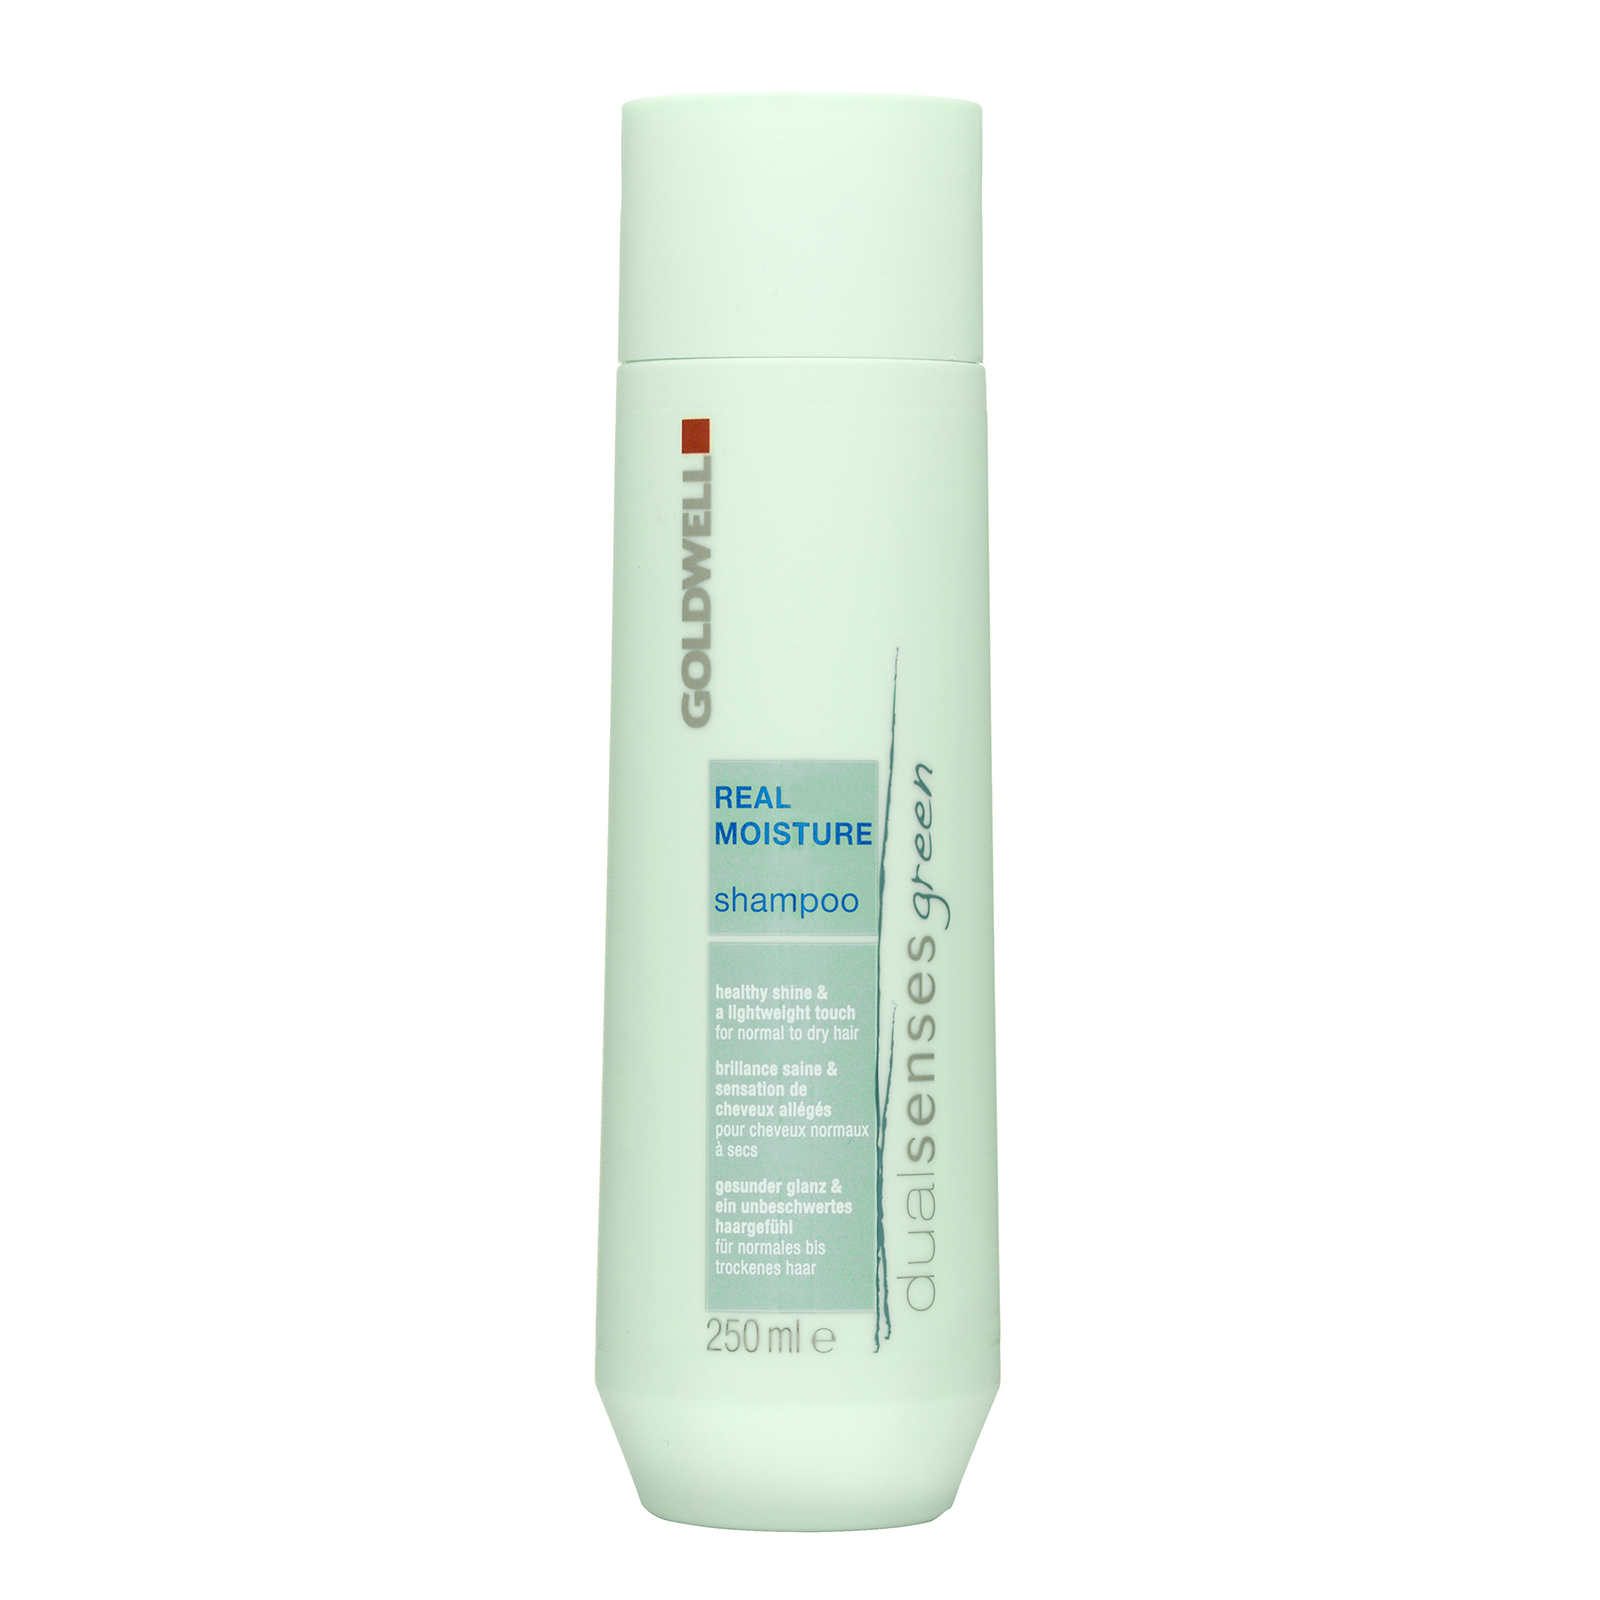 Goldwell Dualsenses Green Real Moisture  Shampoo (For Normal To Dry Hair) 250ml, from Cosme-De.com